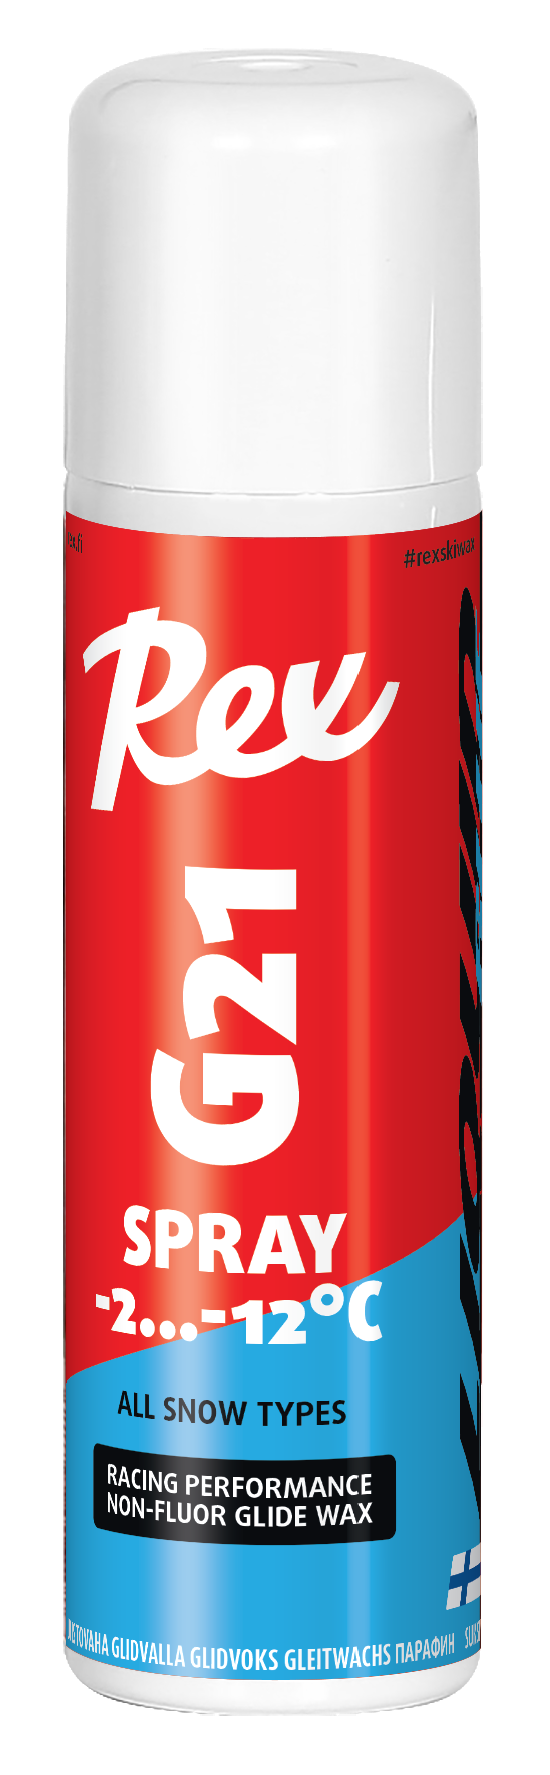 437-G21-Blue.png